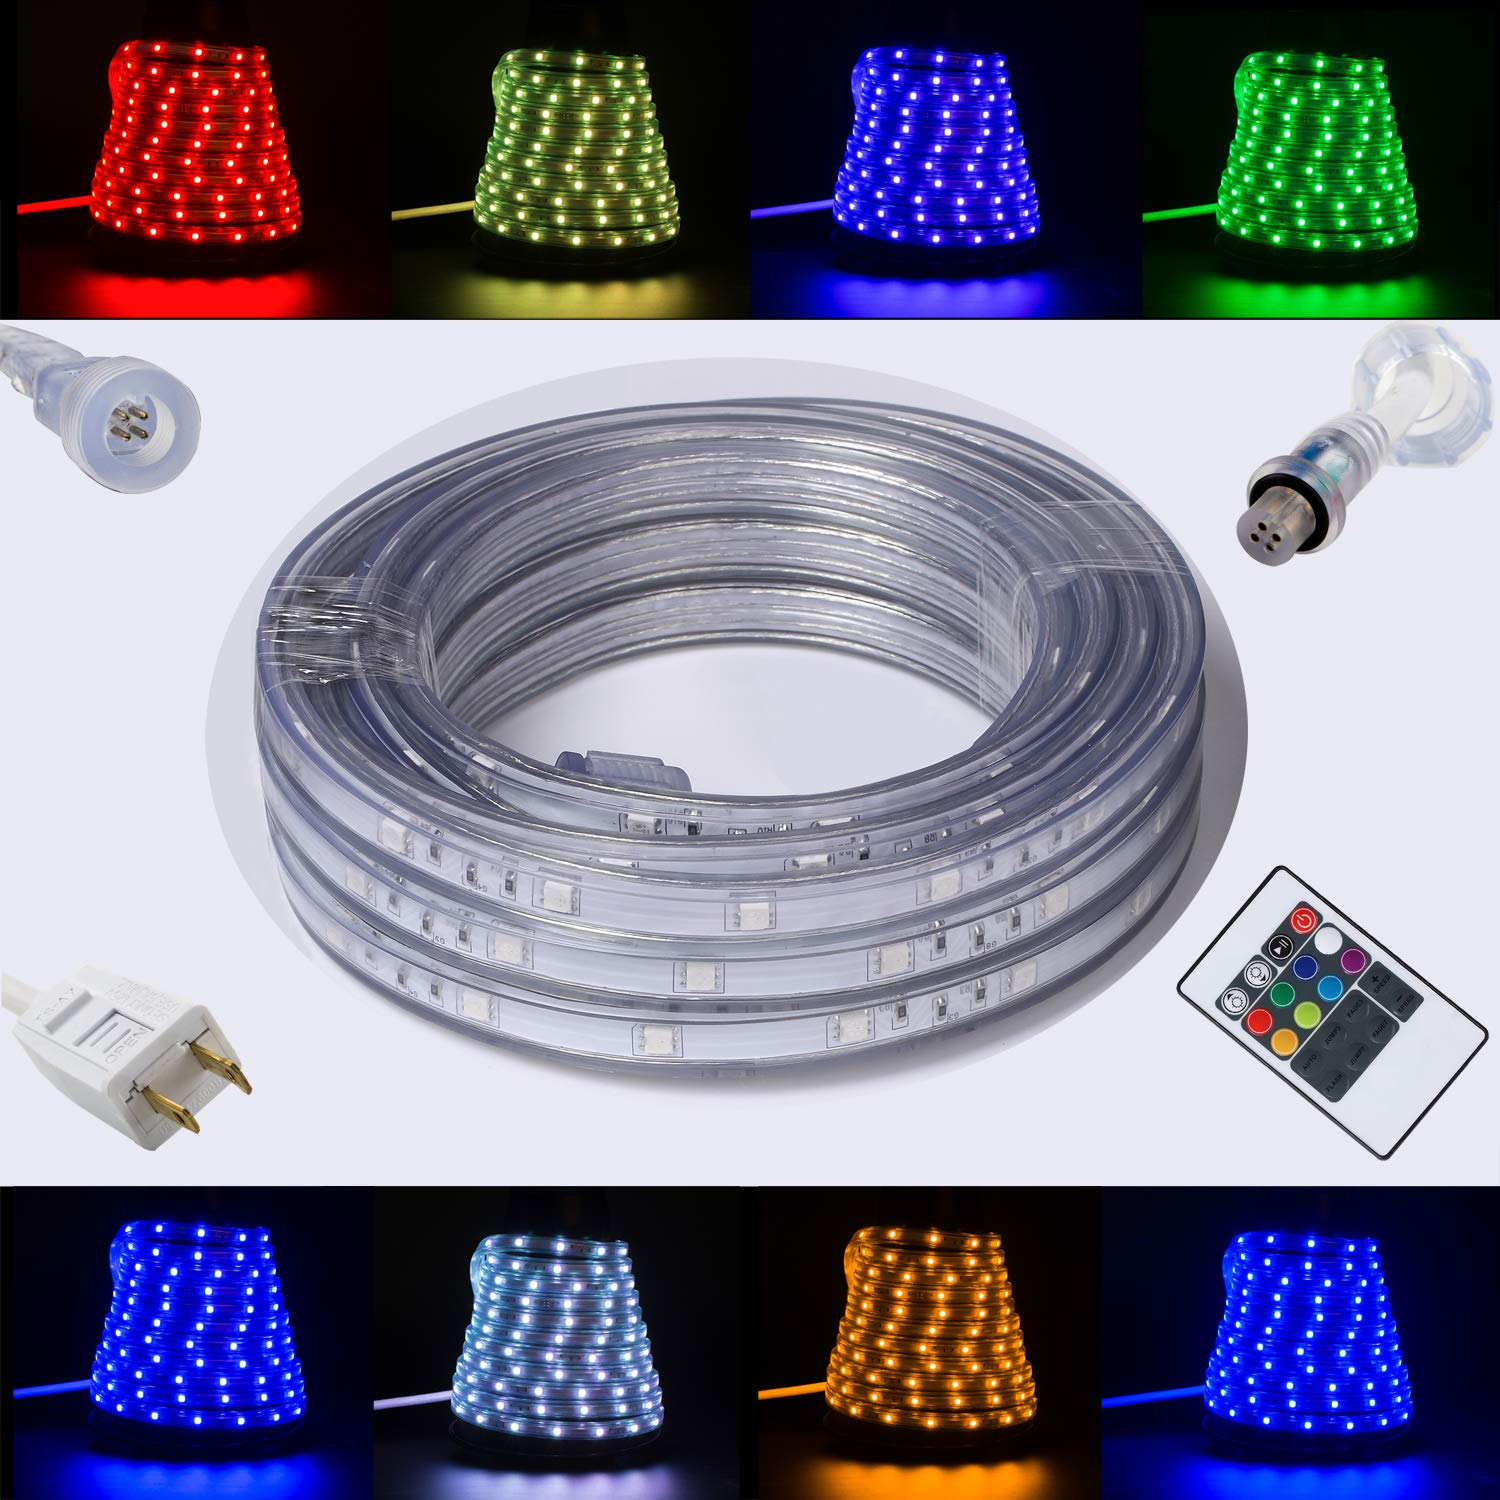 16.4ft(5m) Flexible Flat RGB LED Light Strip Rope Lights Connectable Dimmable Waterproof Weatherproof Outdoor Indoor Static 8-color and Auto Multiple Mode for Garden Patio Party Christmas Thanksgiving